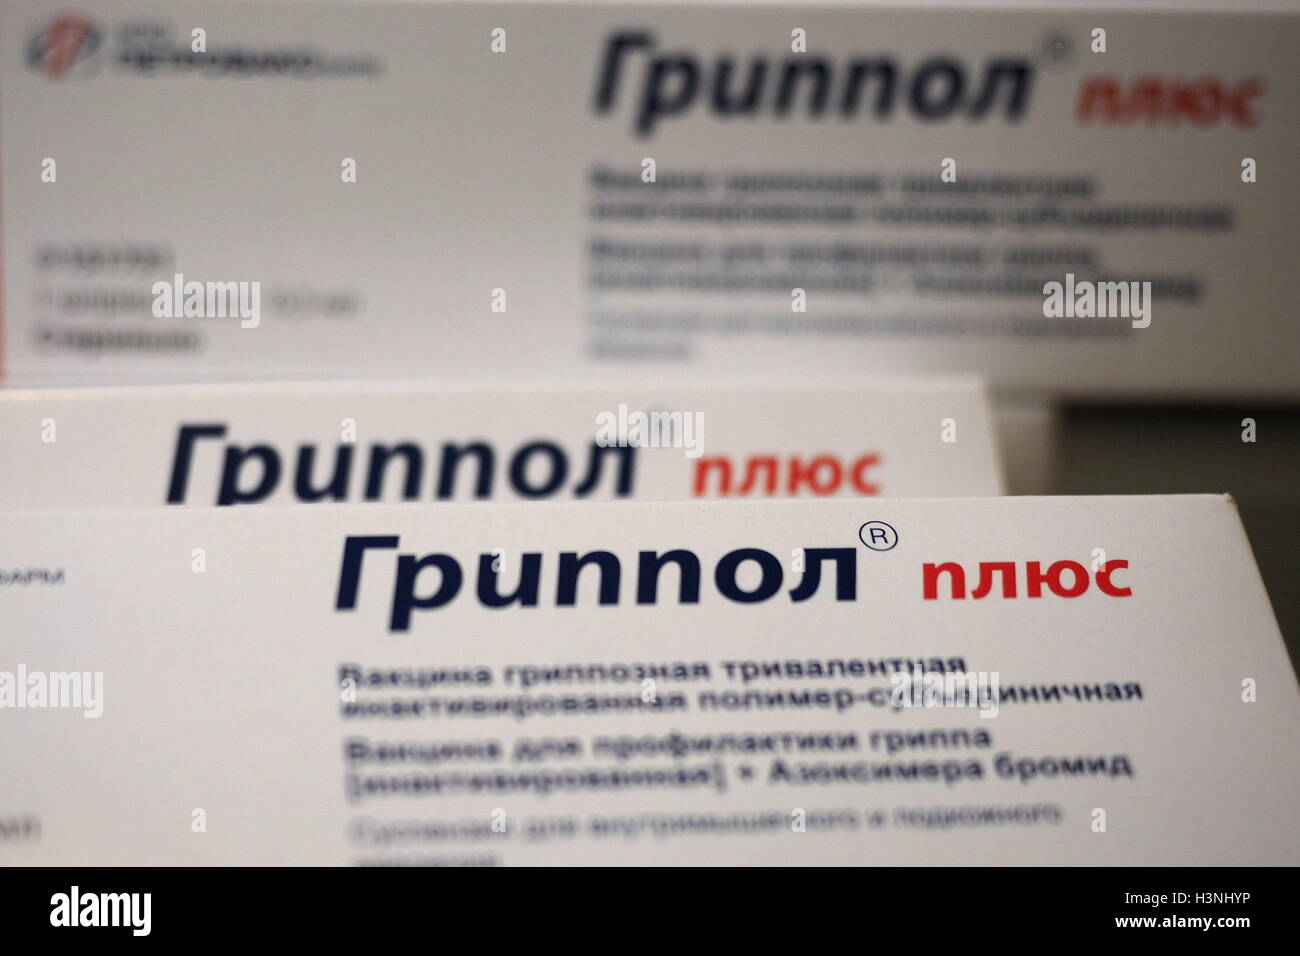 Grippol Plus: reviews of the vaccine for the prevention of influenza 85